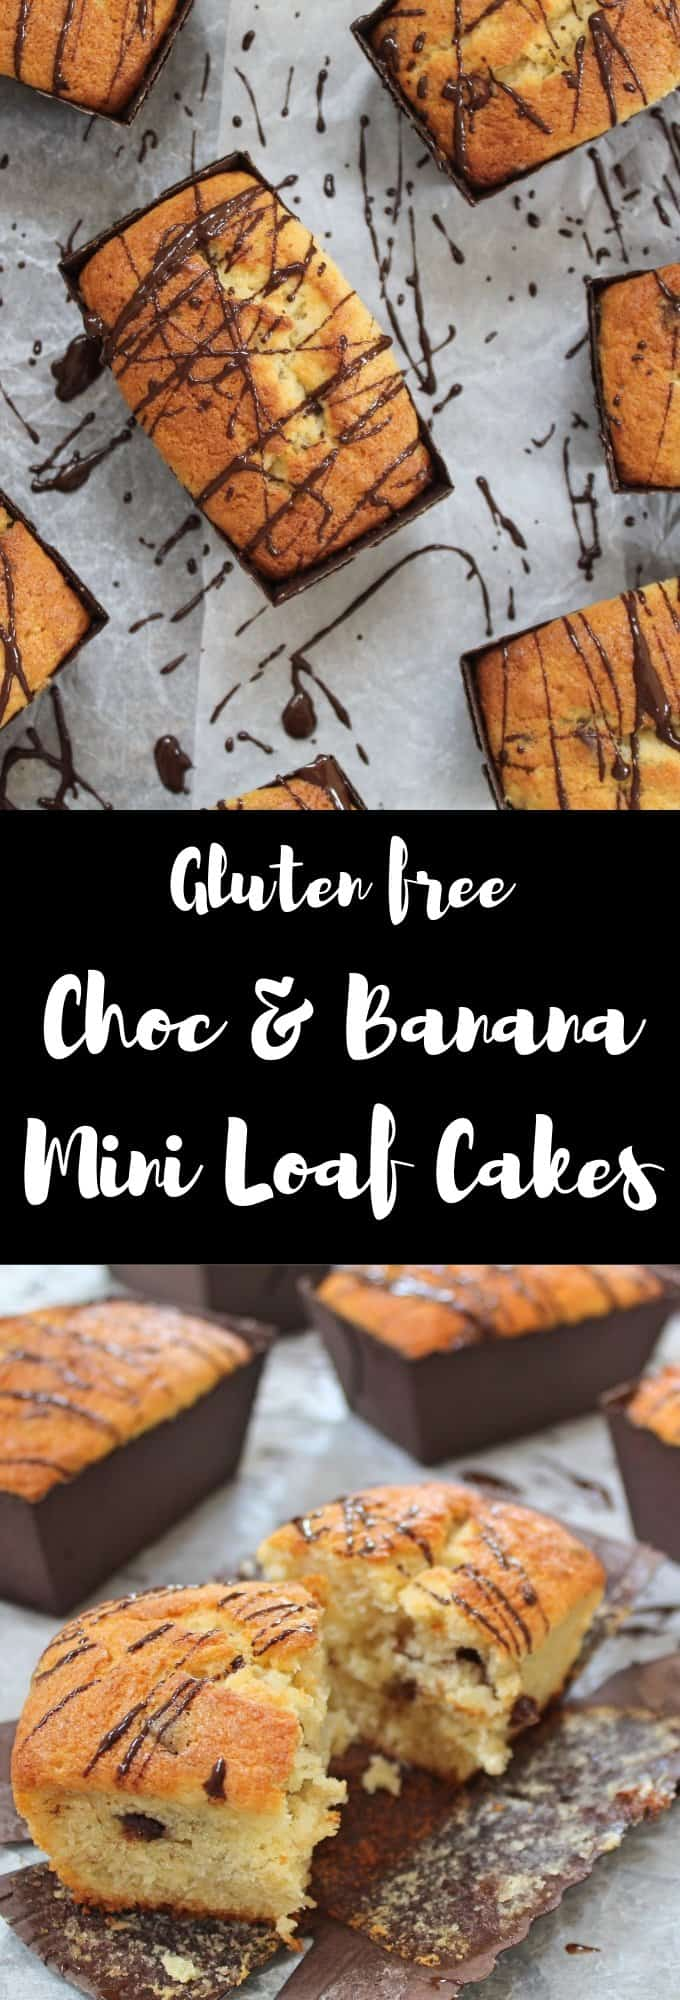 Gluten free banana and choc chip mini loaf cakes recipe coeliac baking easy bakes